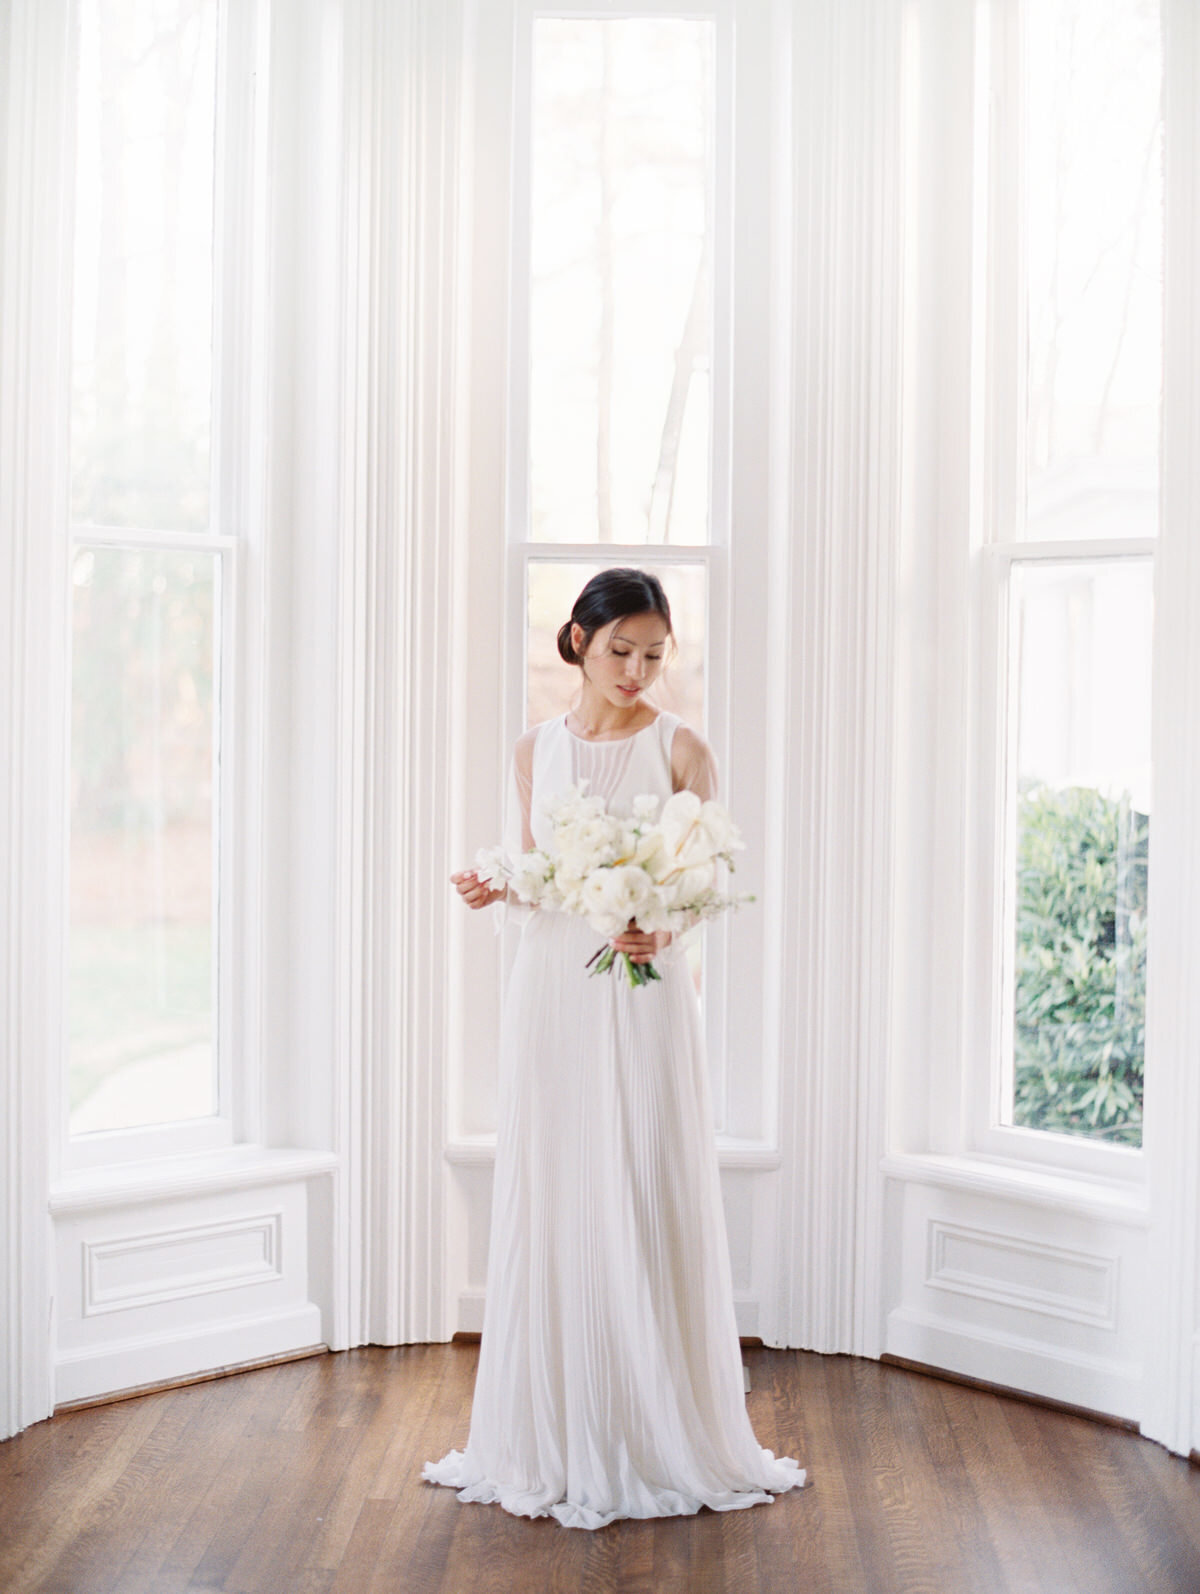 A Greensboro wedding photographer capture a bride at a modern wedding day at McAlister Leftwich wedding venue.